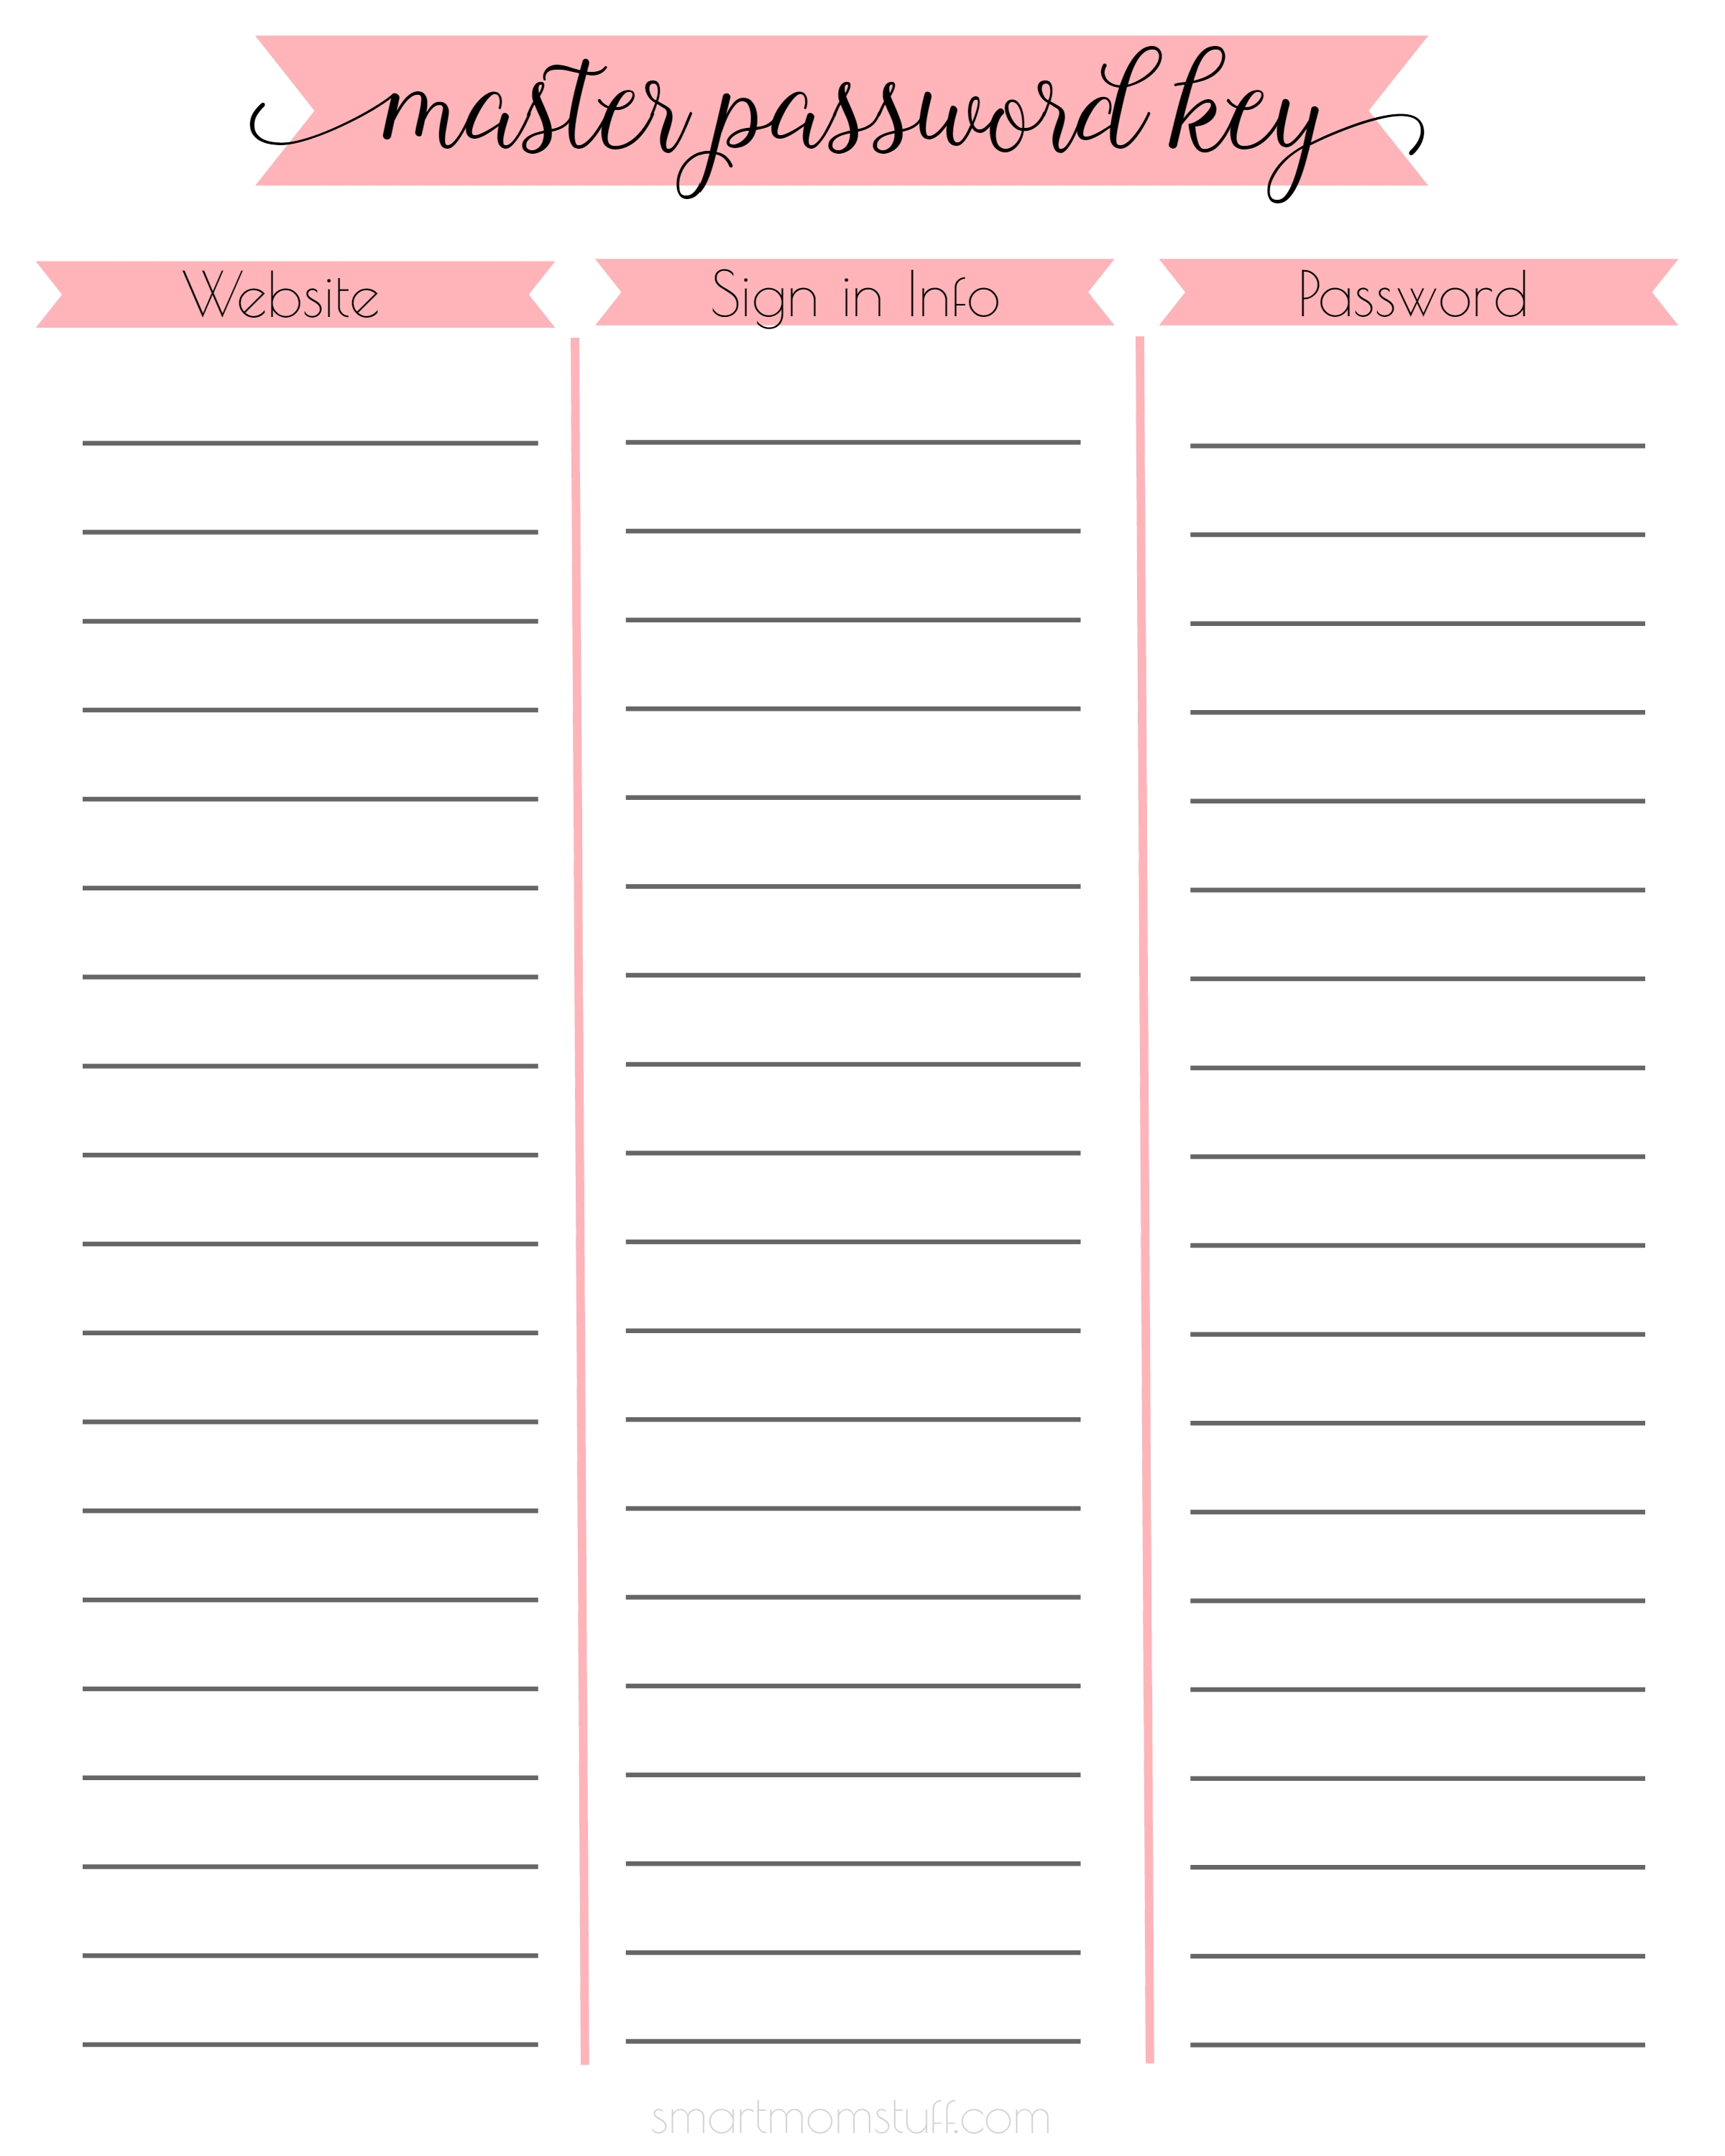 Free Printable For Master Password Keeping! From Smartmomstuff pertaining to Free Printable Password Organizer Sheets